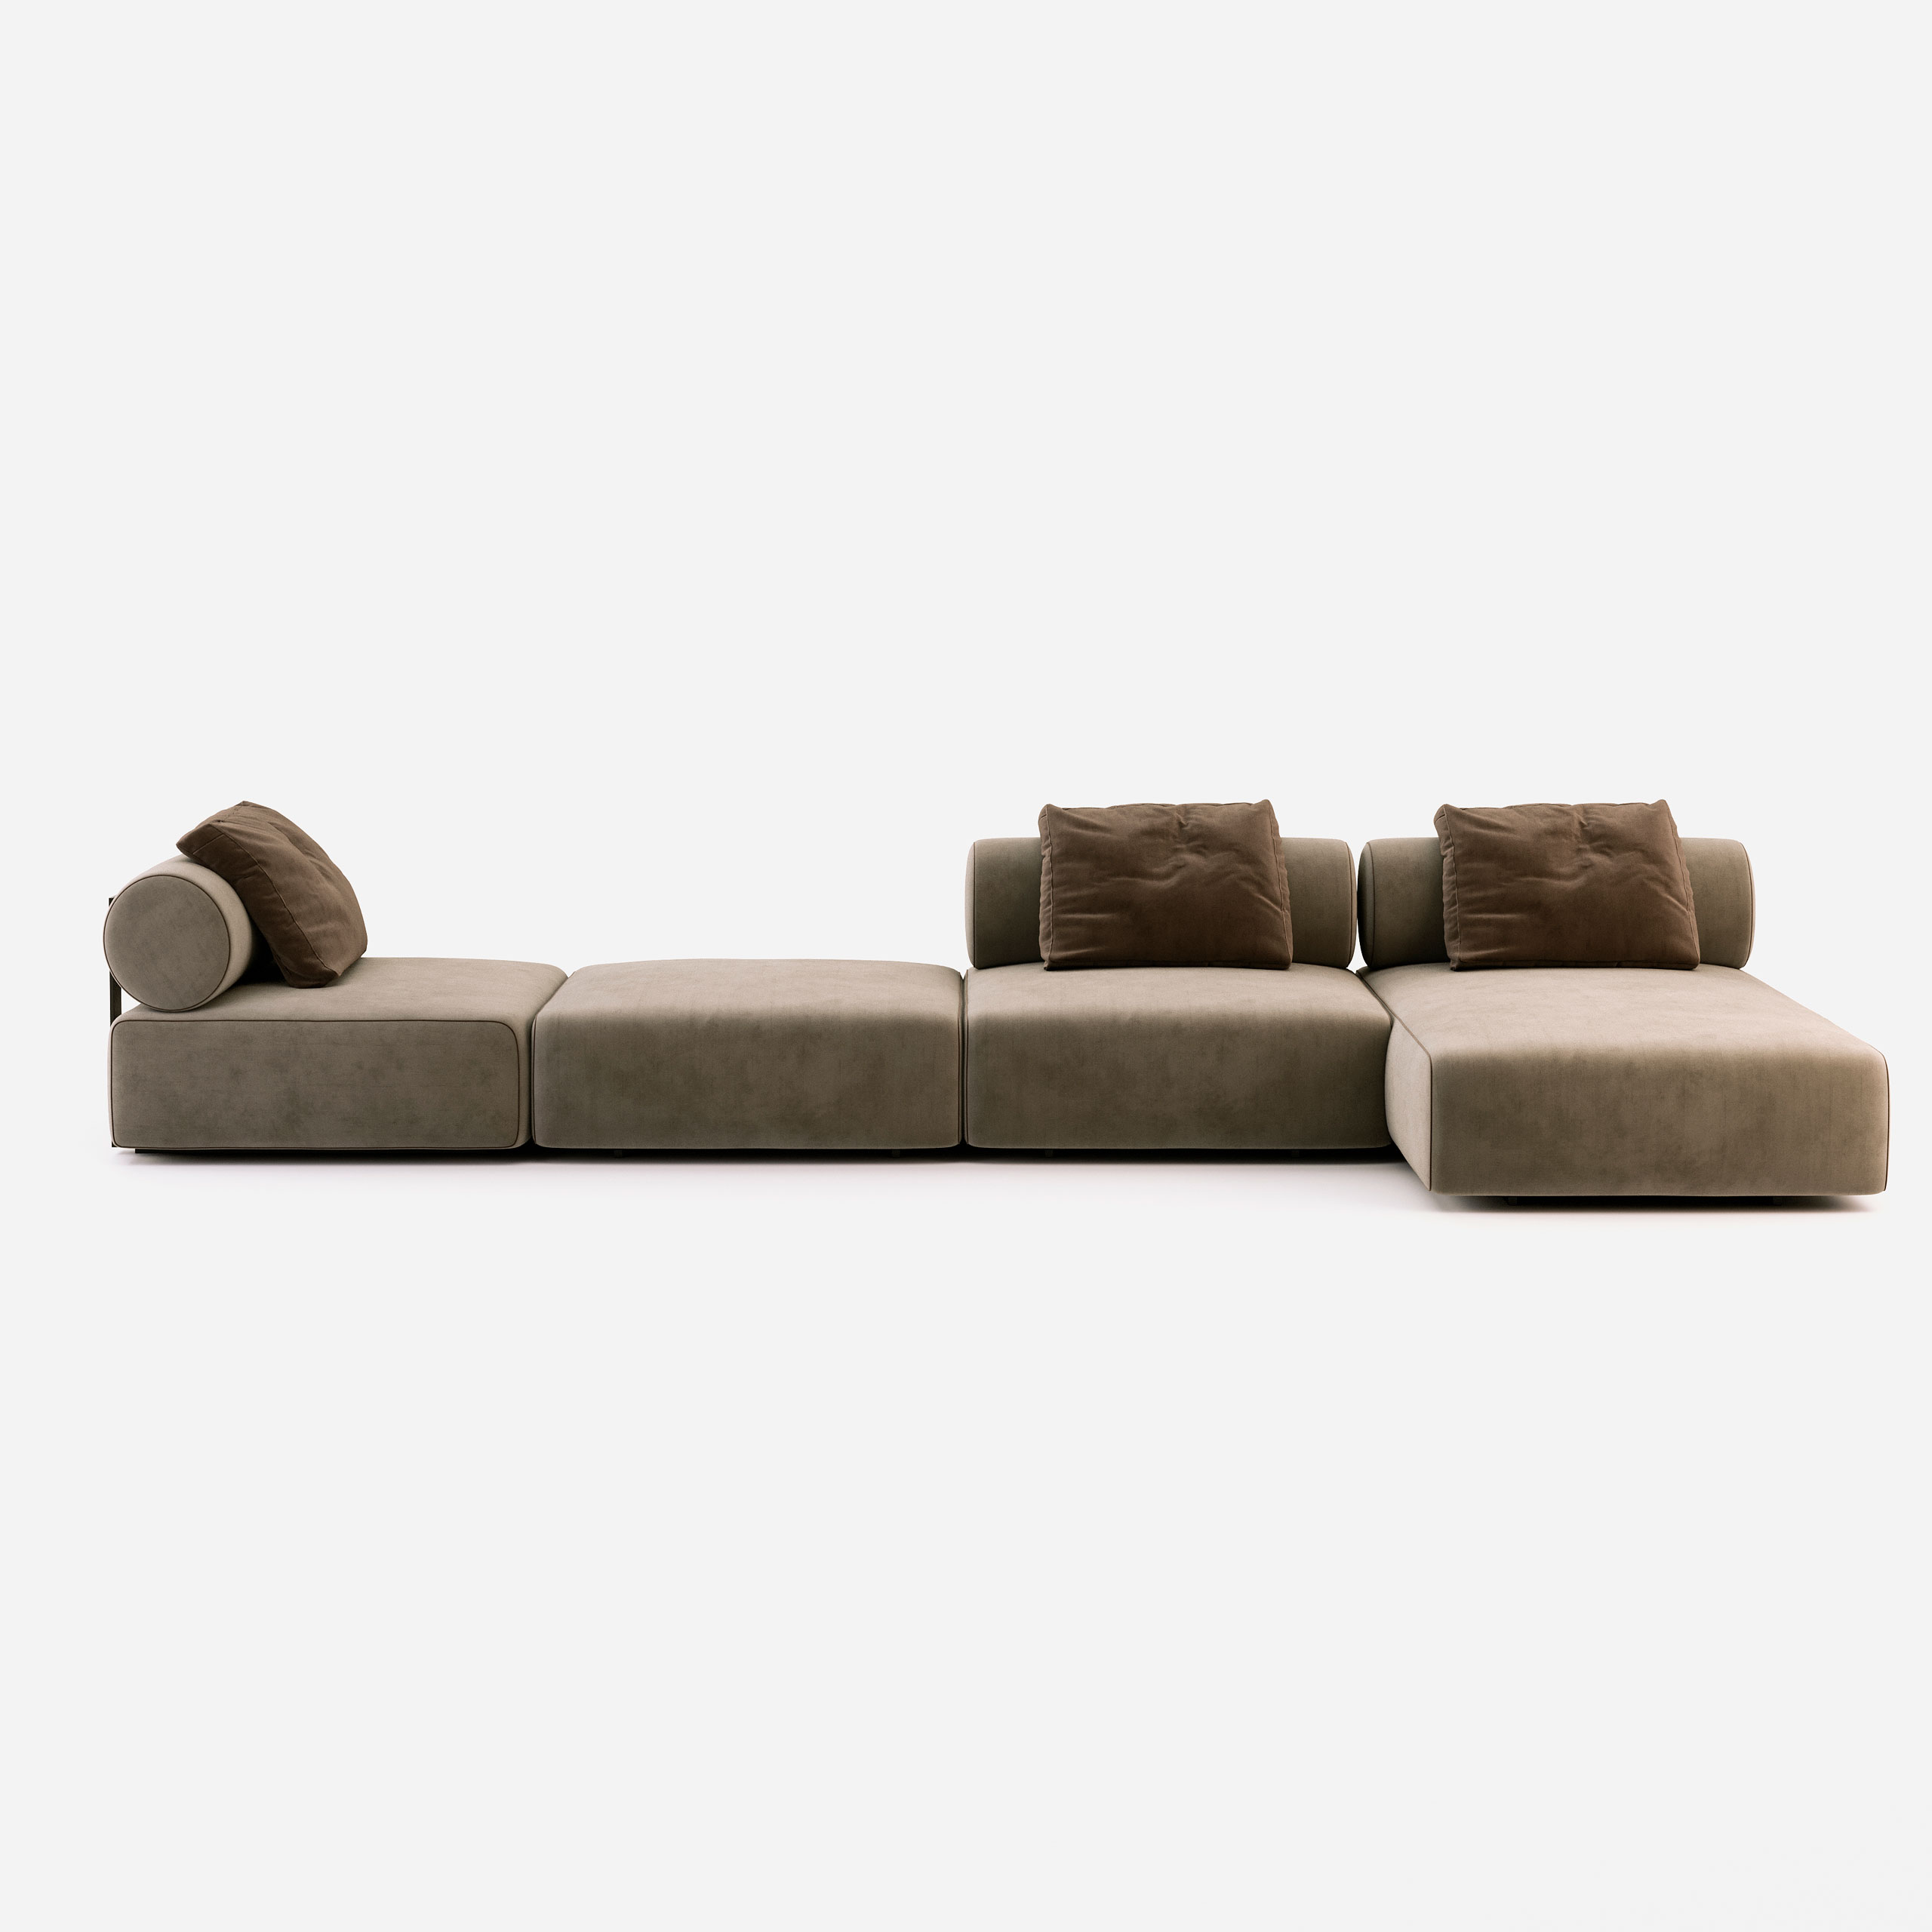 shinto-sofa-domkapa-new-collection-2021-living-room-decor